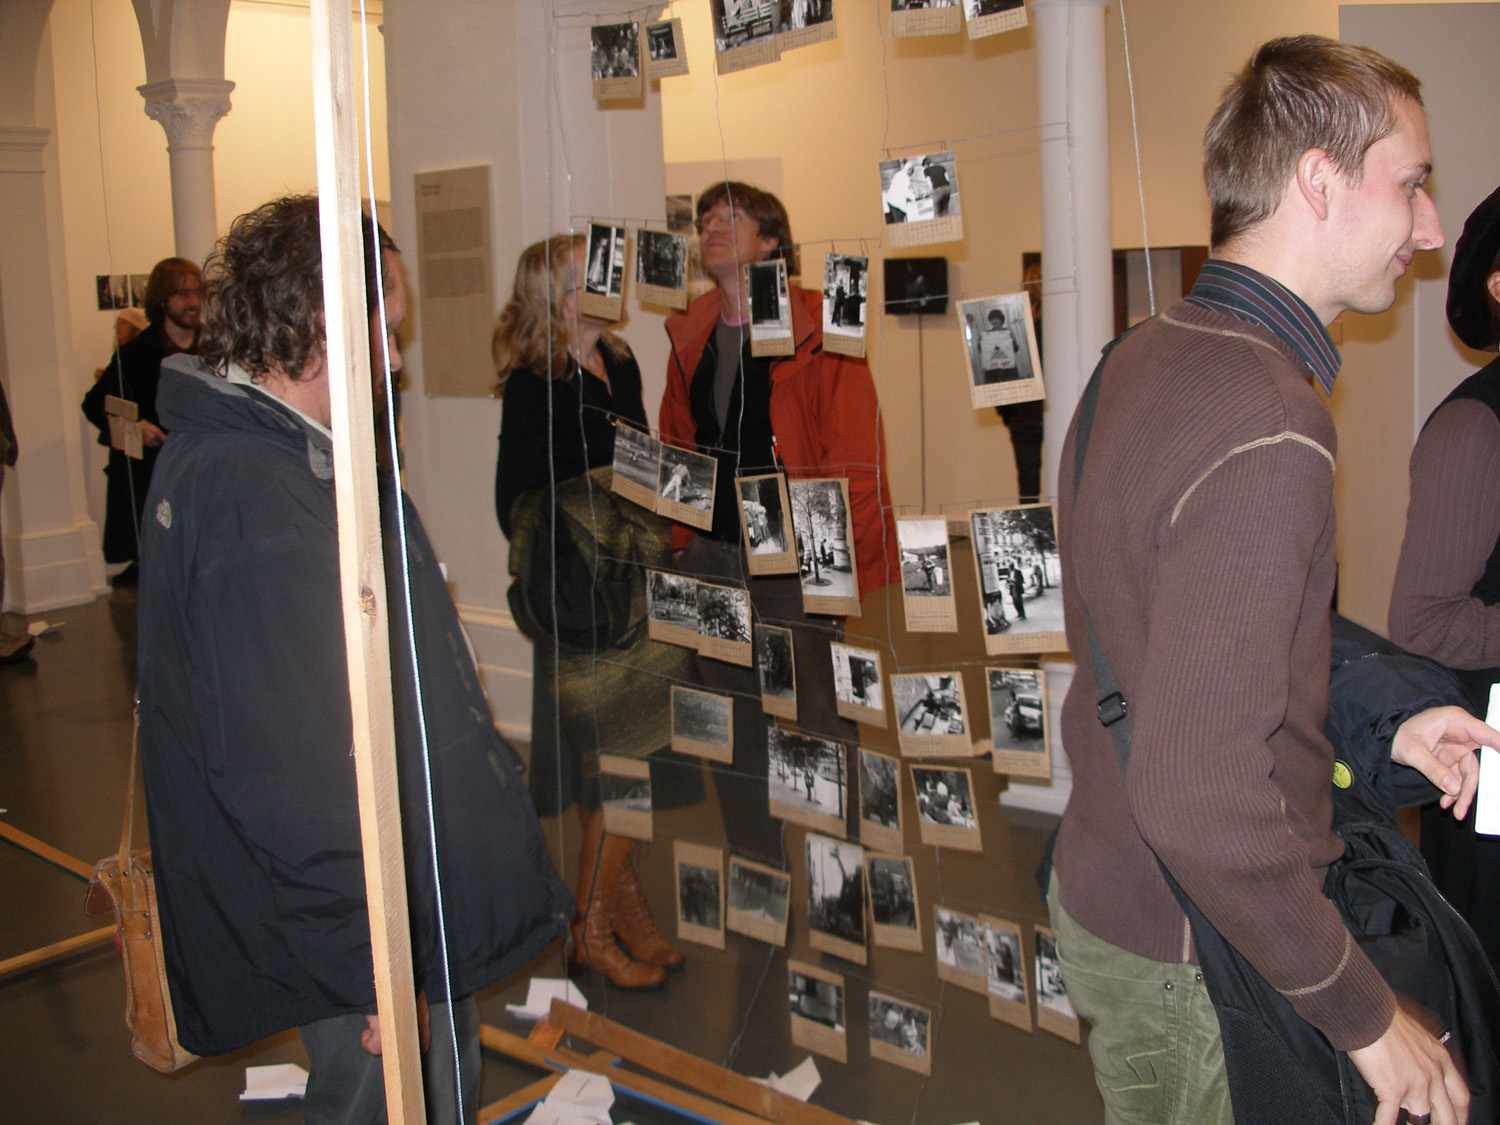 View of the reconstructed Poipoidrom at the opening of the exhibition Fluxus East, Künstlerhaus Bethanien, Berlin, 2007